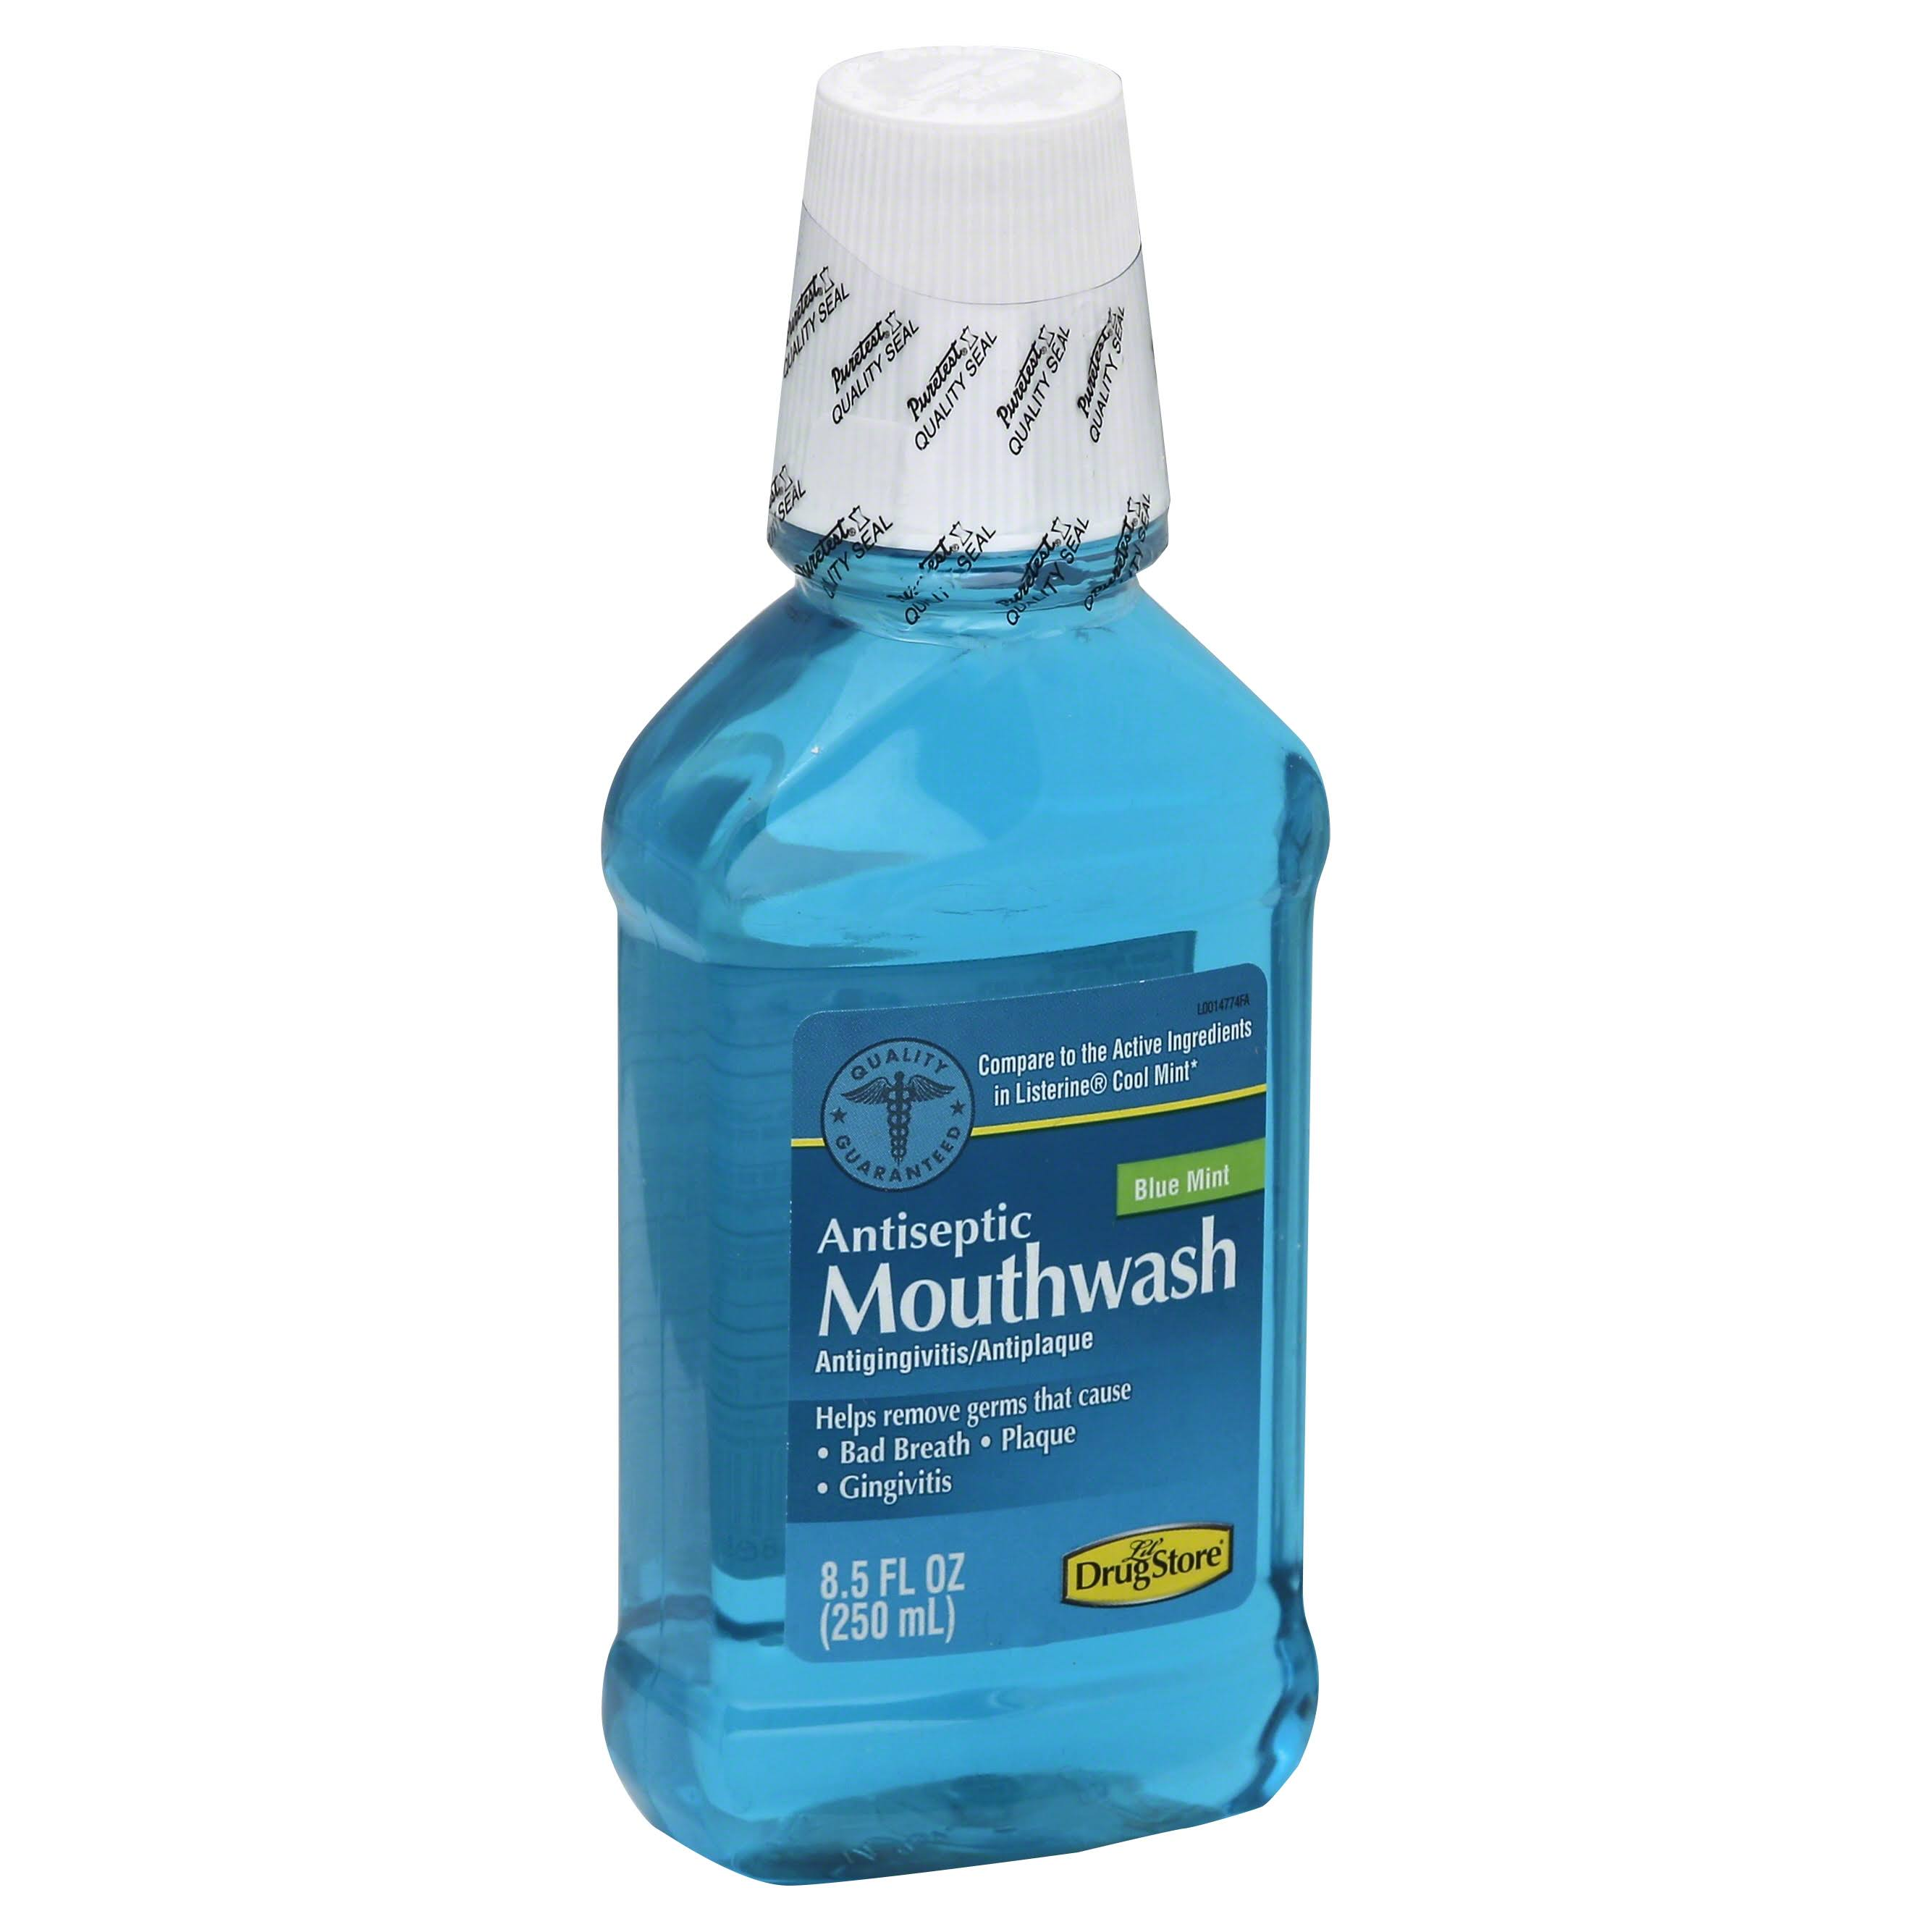 Lil Drug Store Mouthwash, Antiseptic, Blue Mint - 8.5 fl oz